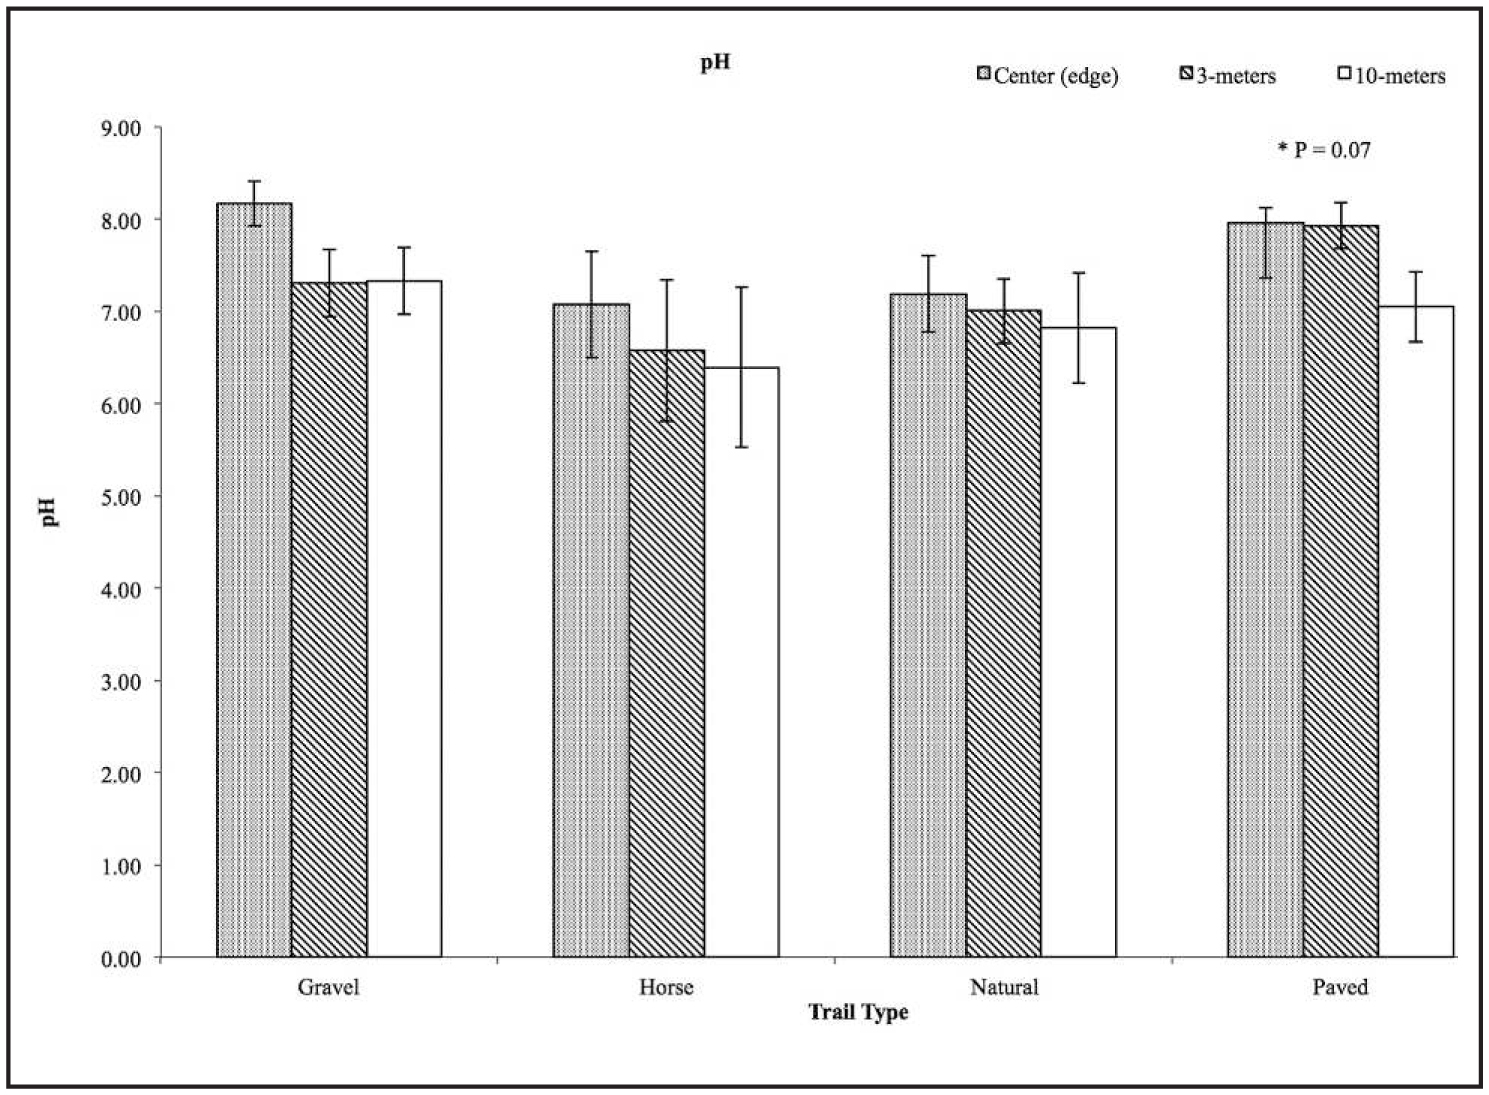 The Effect of Trails on Soil in the Oak Openings of Northwest Ohio